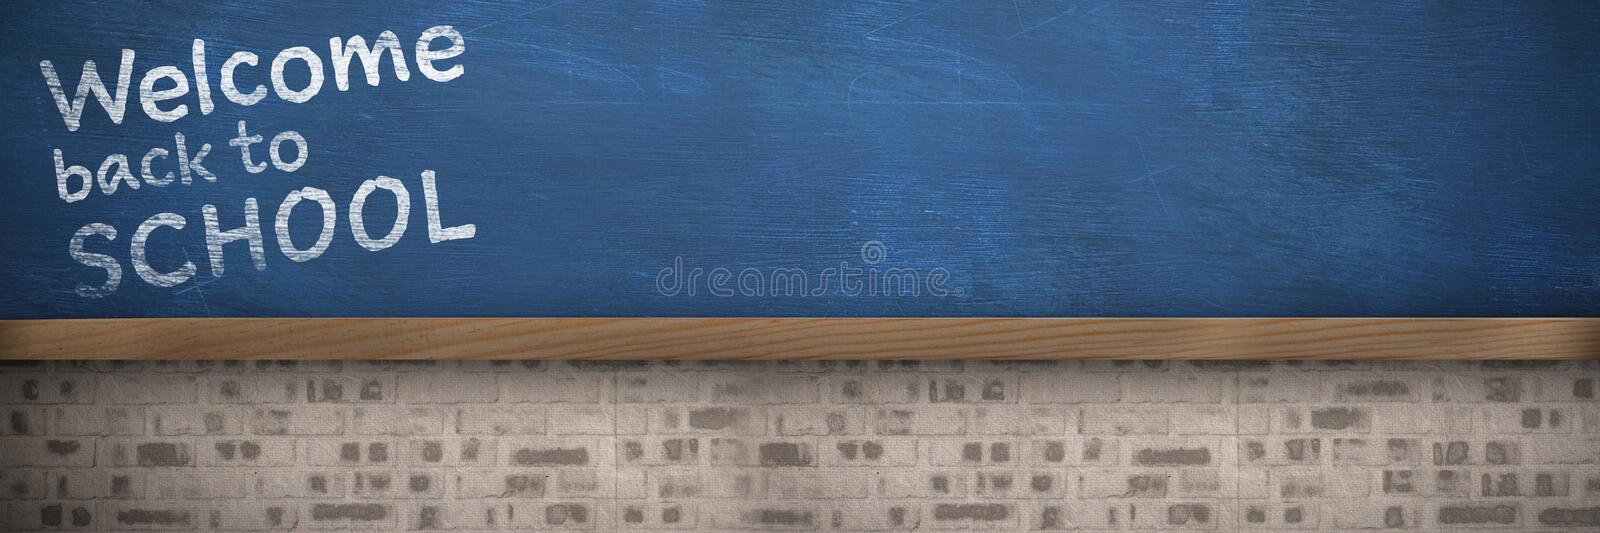 Composite image of welcome back to school text against white background stock illustration